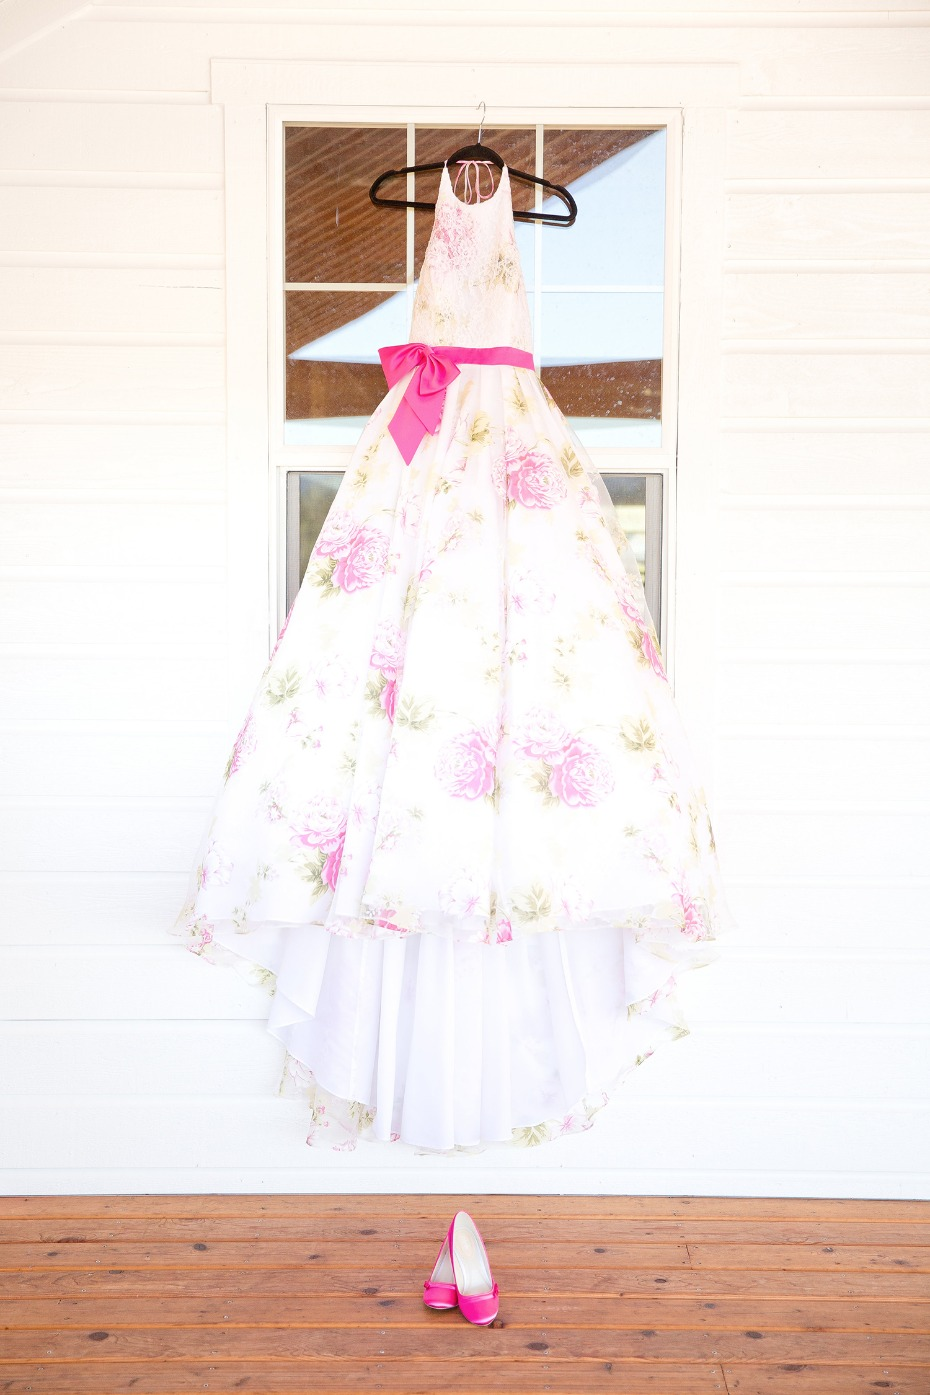 Floral wedding dress with a pink bow and shoes